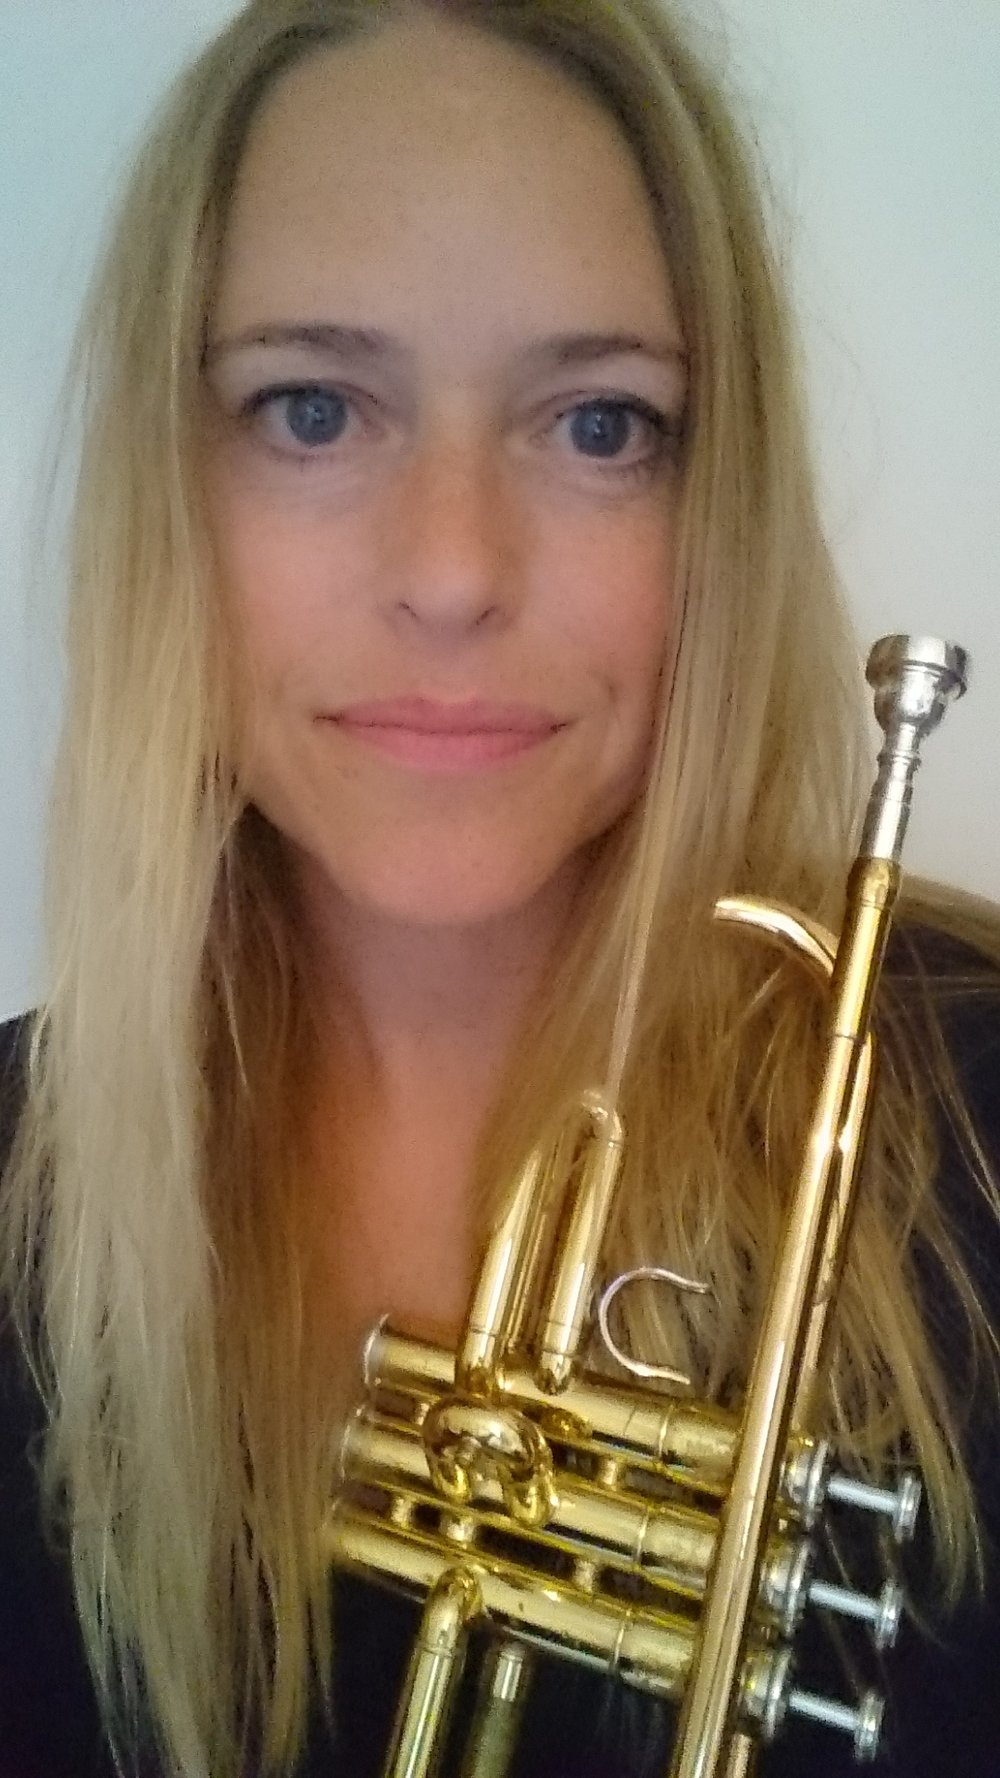 Nicola Curran   - Nicola  is a teacher and took up the trumpet three years ago. she has played in the South London concert band, scratch orchestras and now enjoys playing with Morley College Big Band beginners. She played with us between January and July 2017.